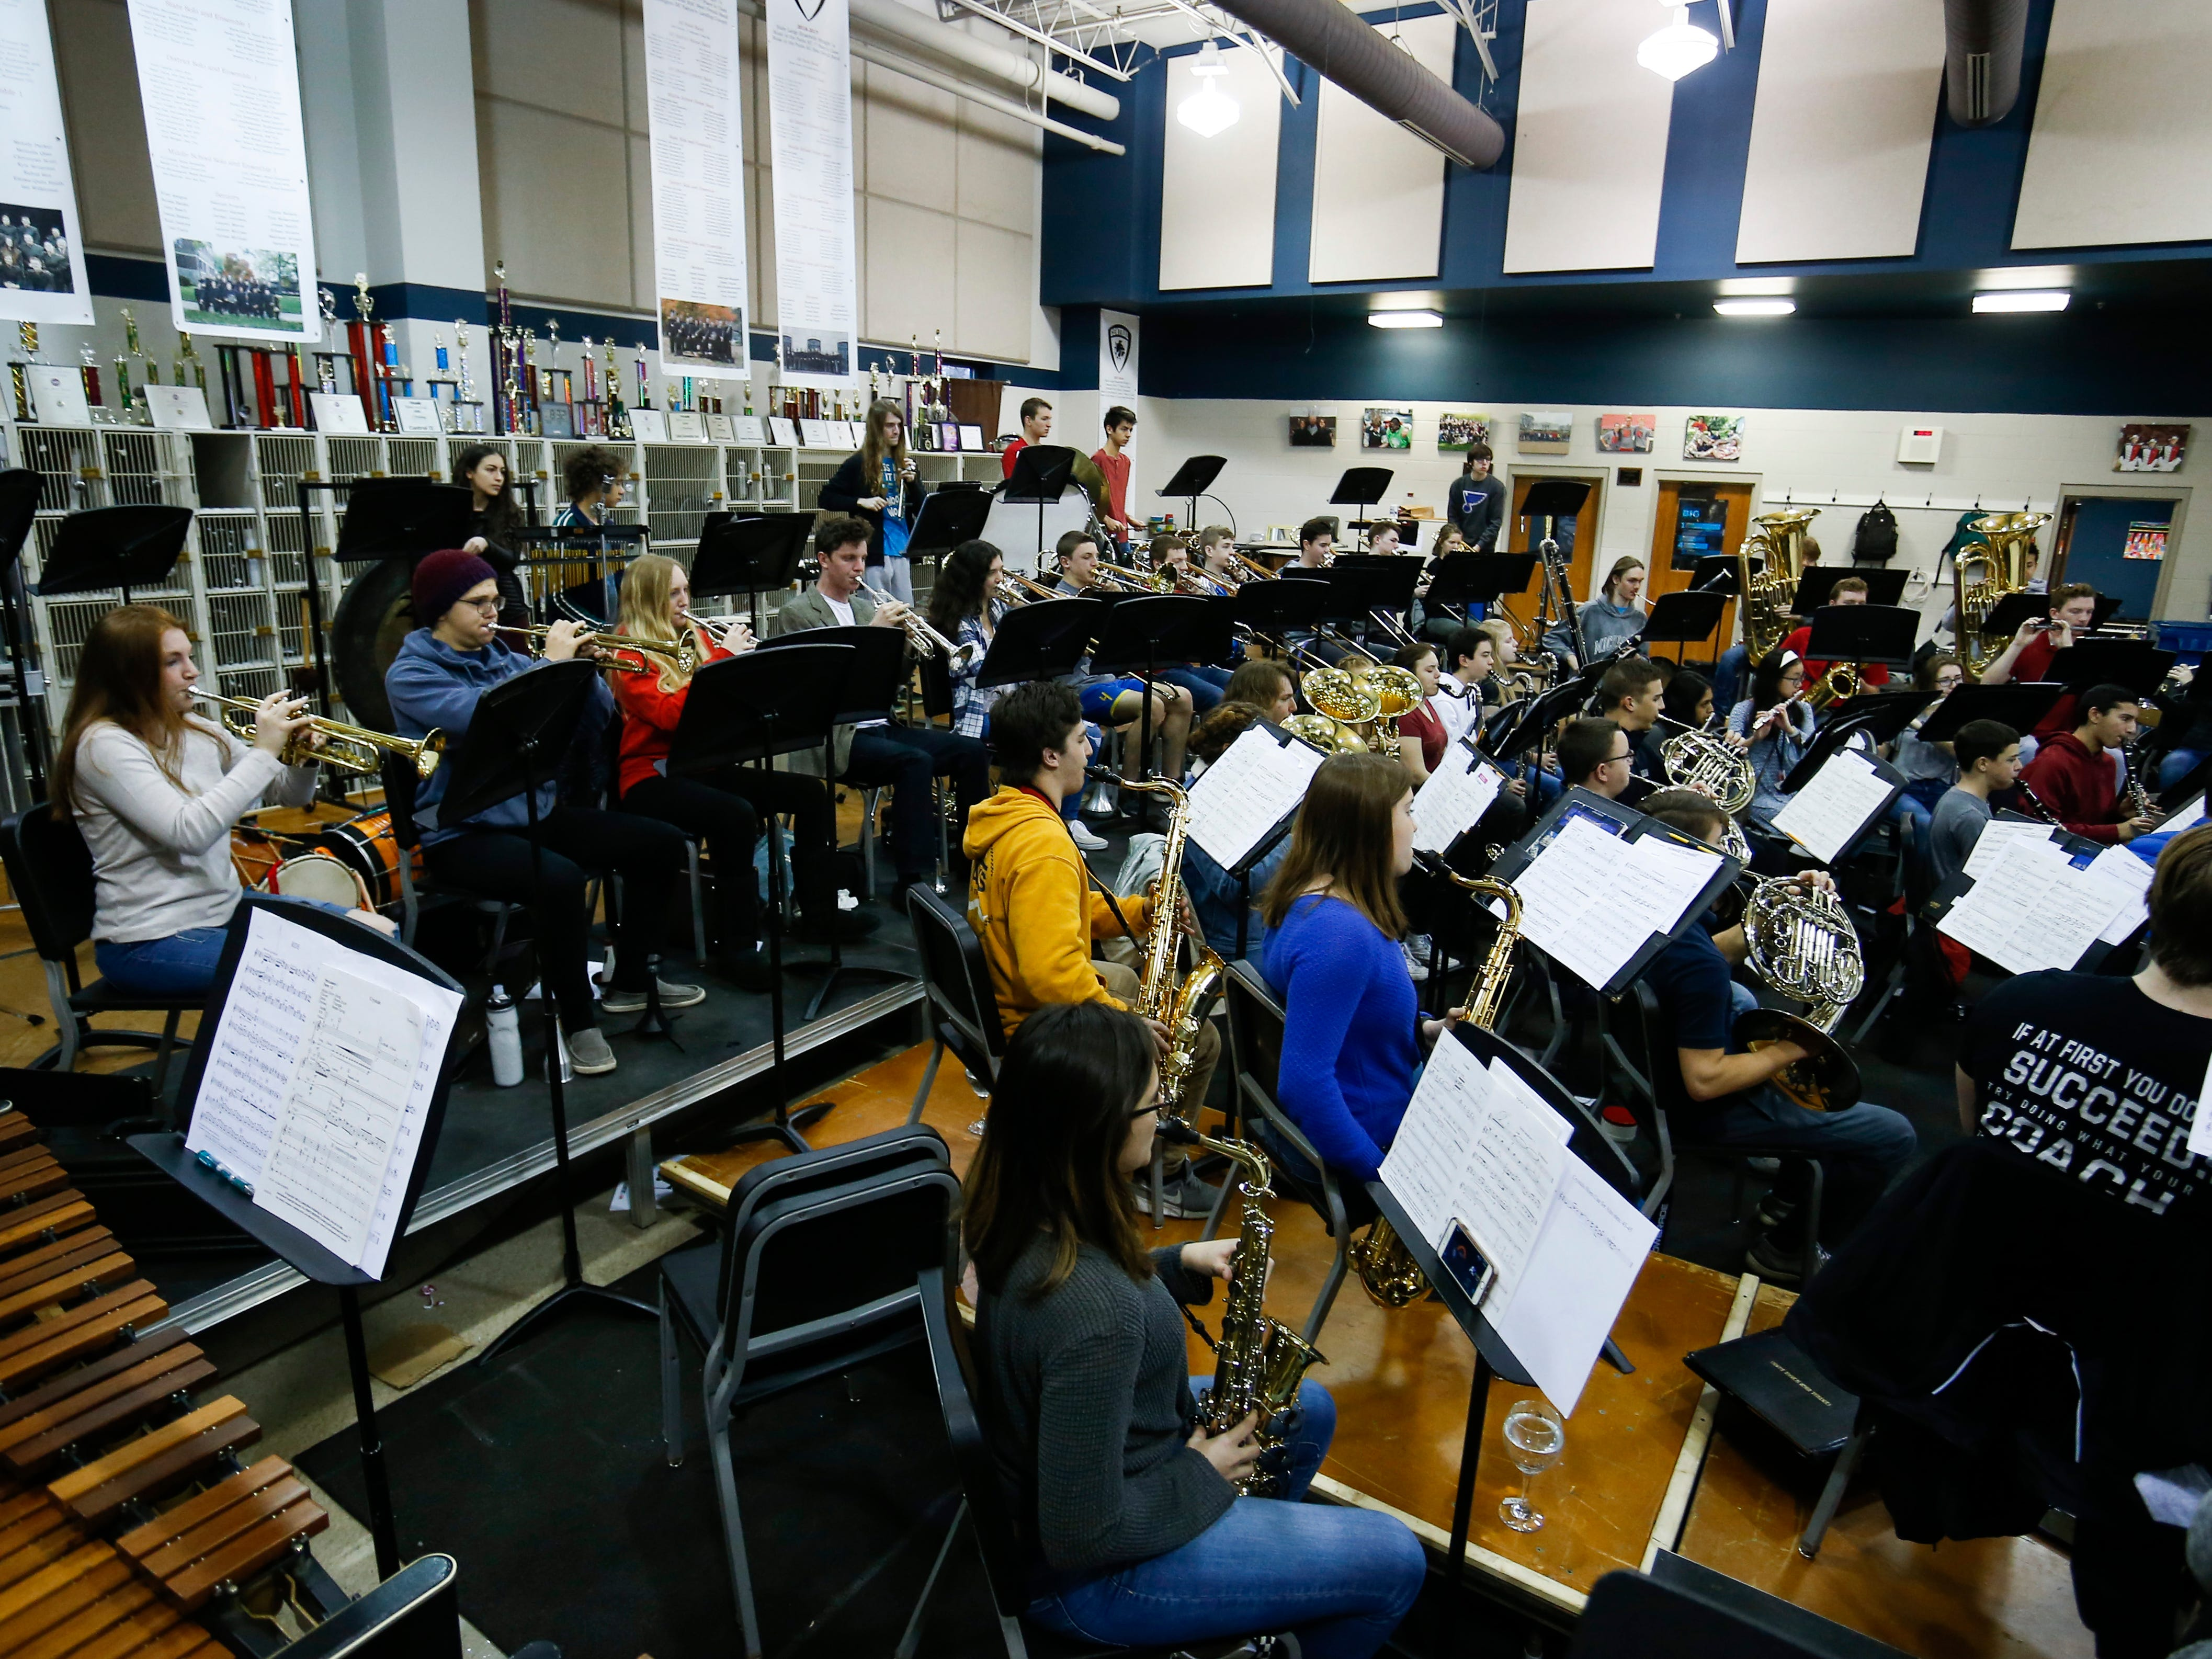 The Central High School wind ensemble practice during class on Wednesday, Jan. 16, 2018. The 53-student wind ensemble will be featured at the annual state conference of the Missouri Music Educators Association next week.